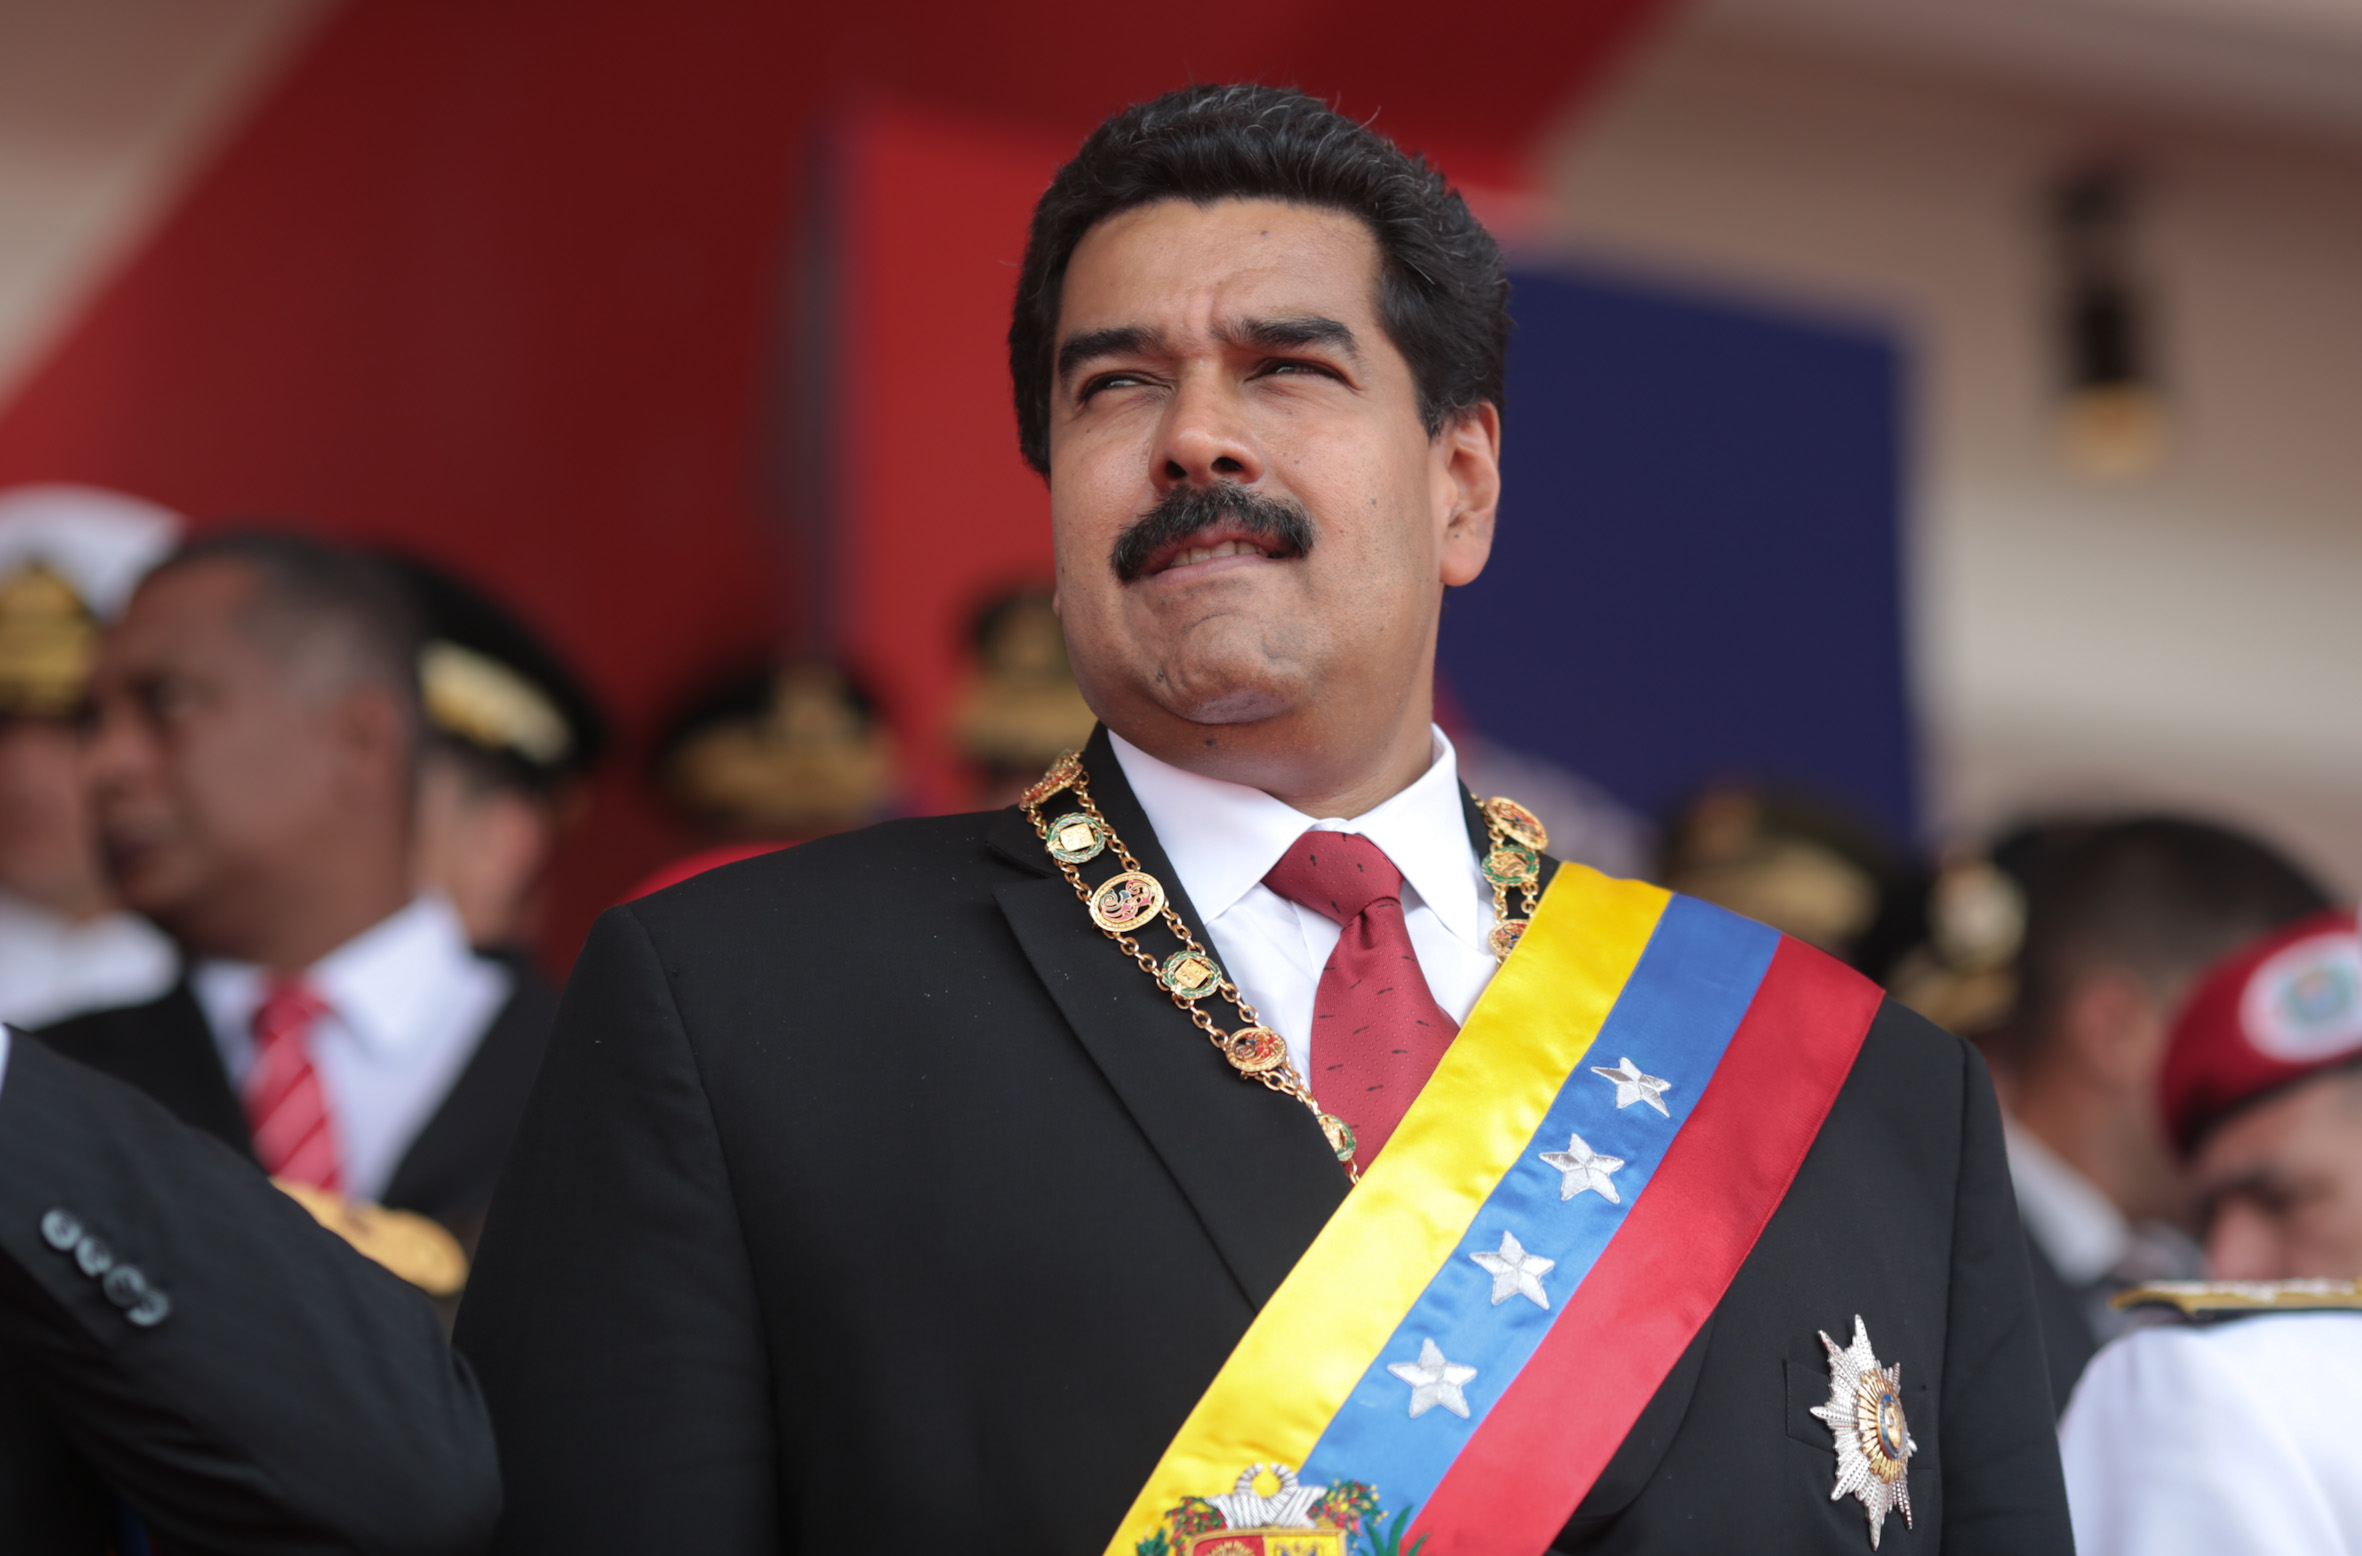 Comment: USA and Venezuelan Right aiming for 'regime ...